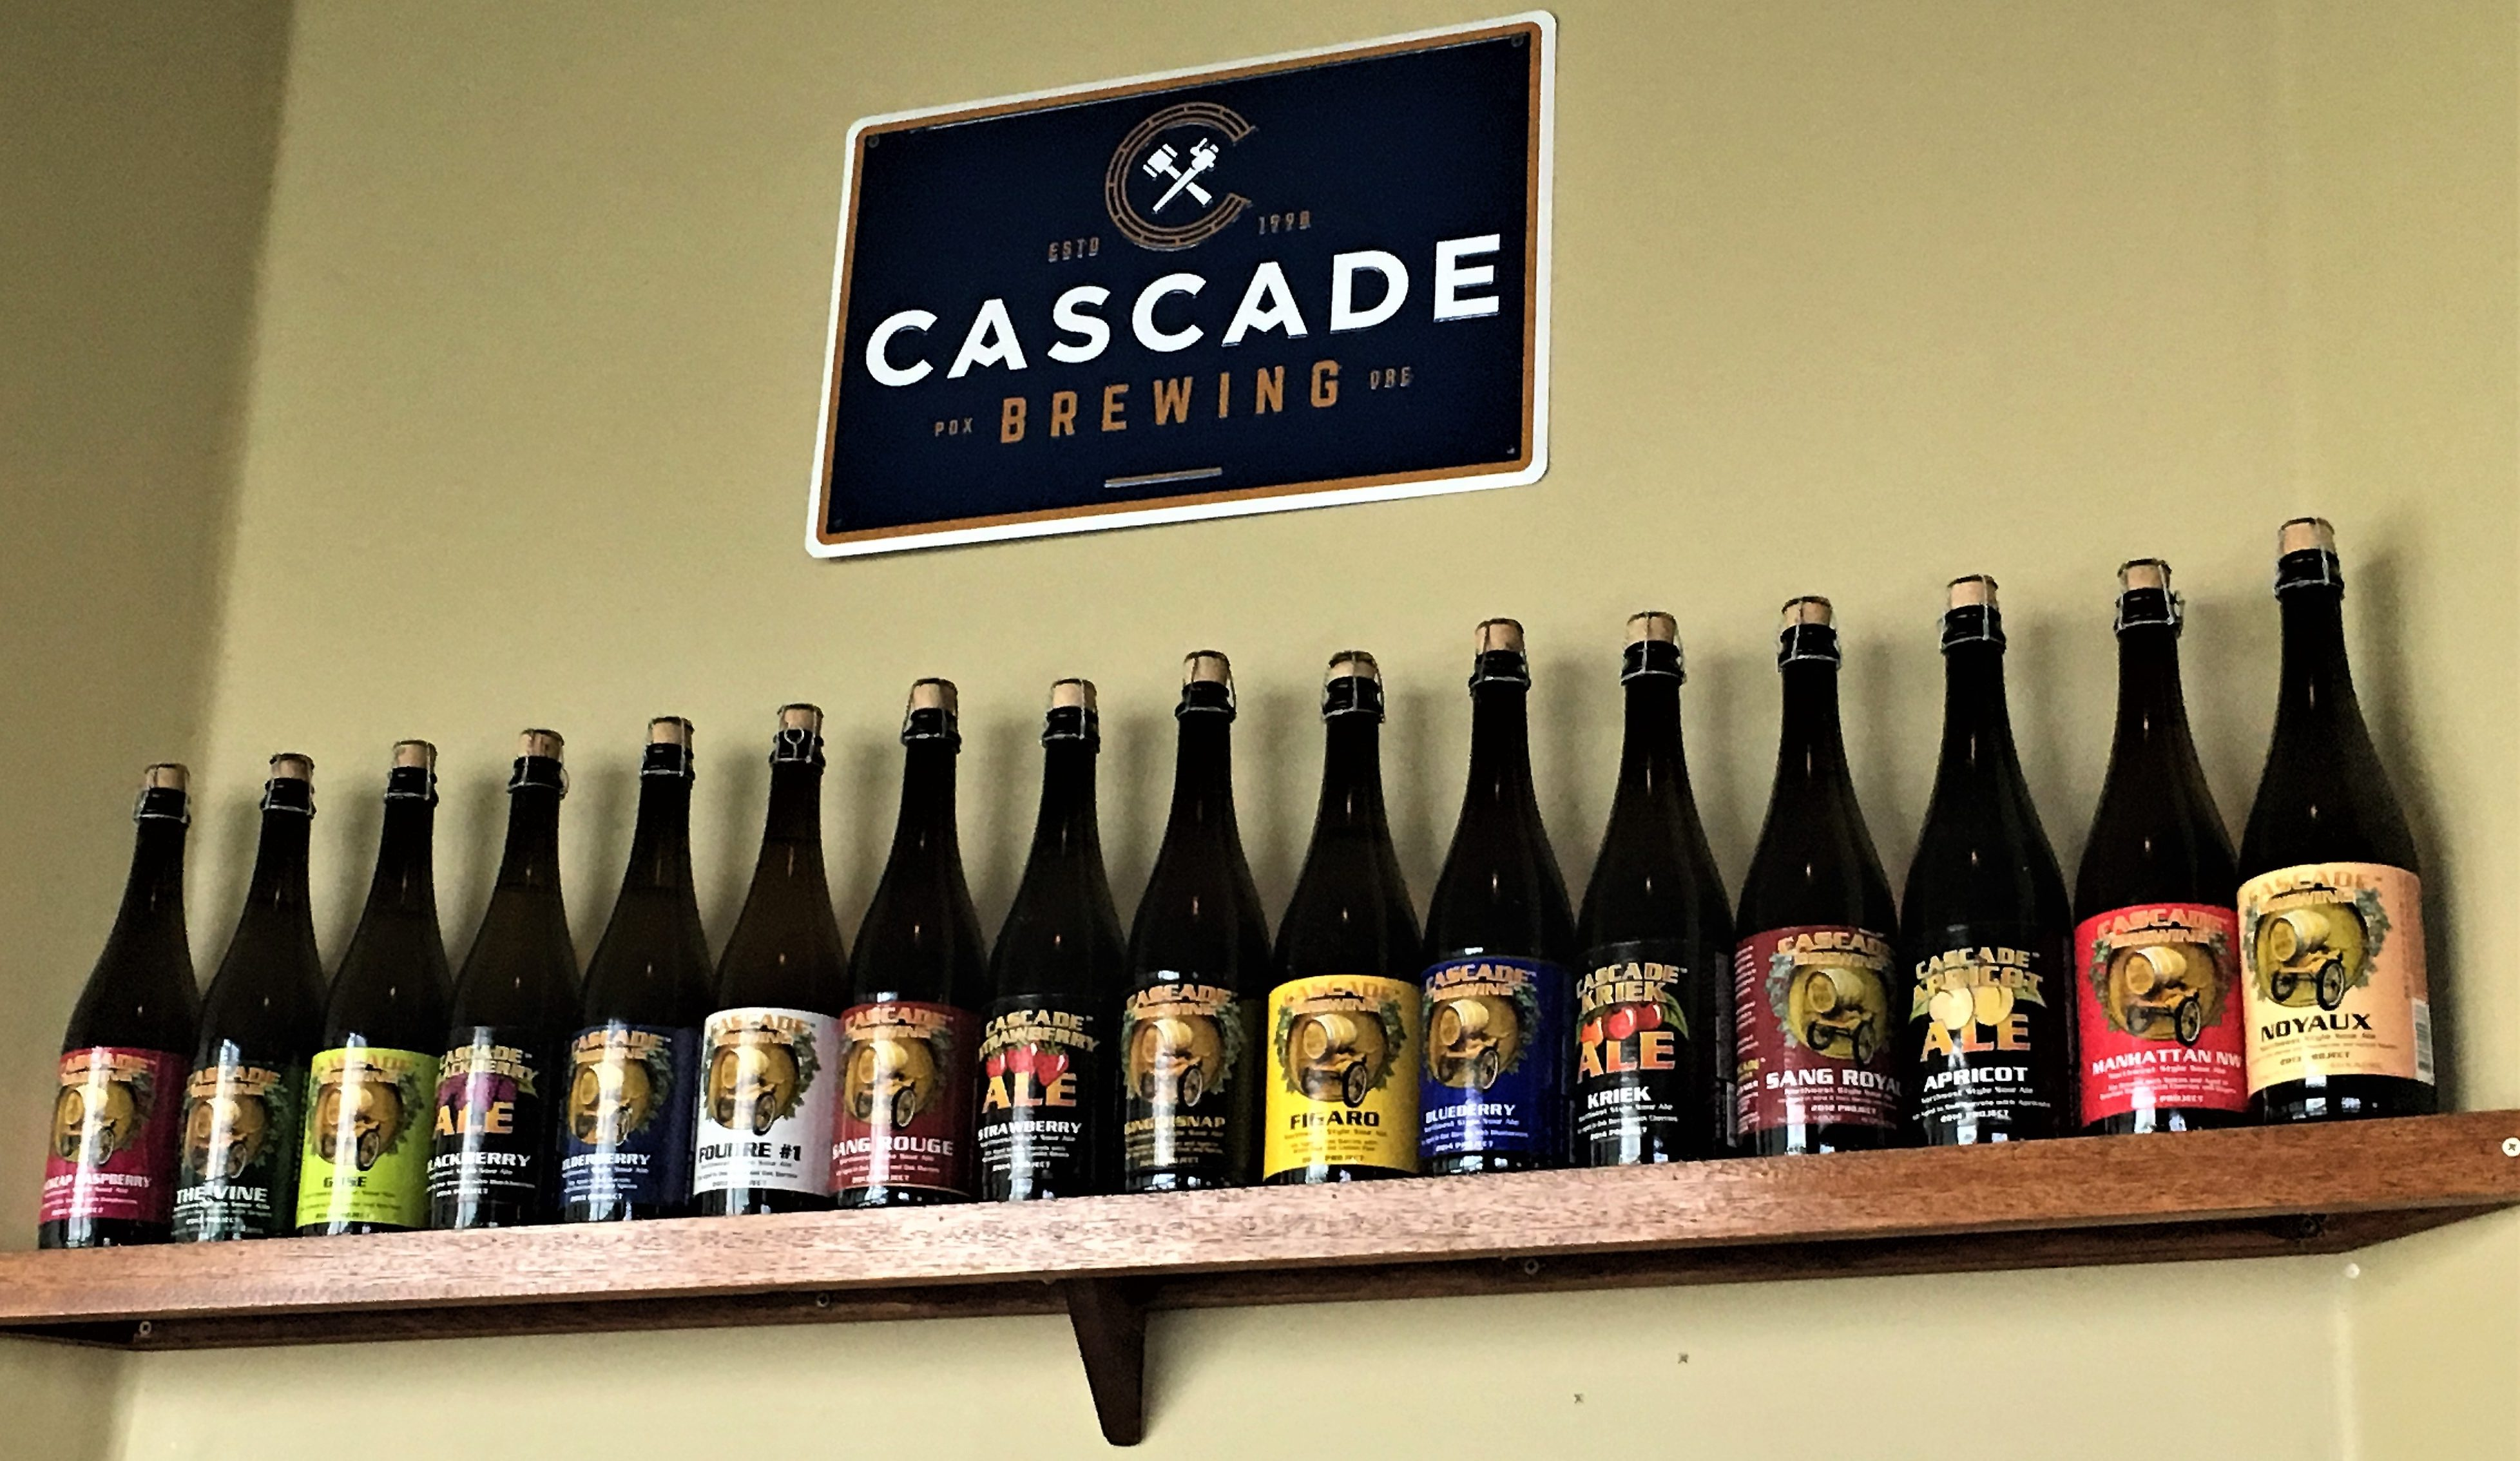 and boy do they have a wide range of bottled fruit beer selections enough for your quota of fruit for the month and possibly tempting you to plant the